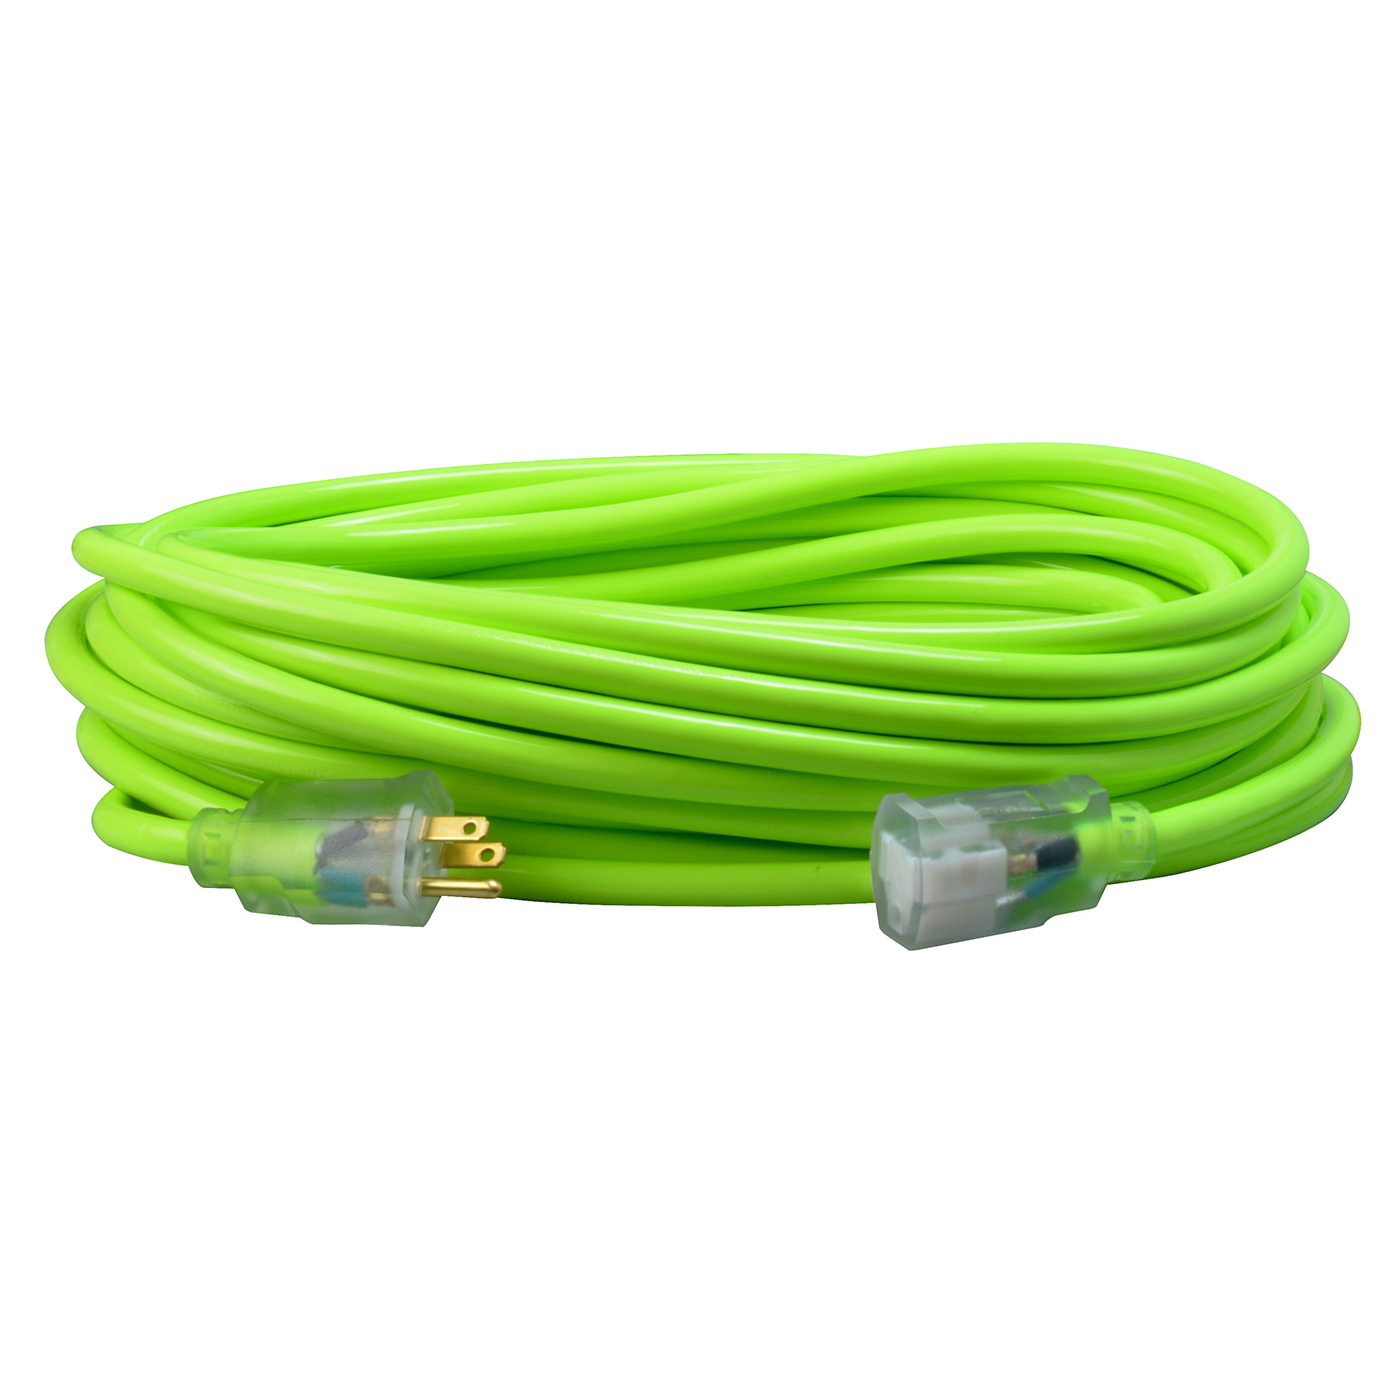 12 3 50 Sjtw Extension Cord Extension Cord Outdoor Extension Cord Heavy Duty